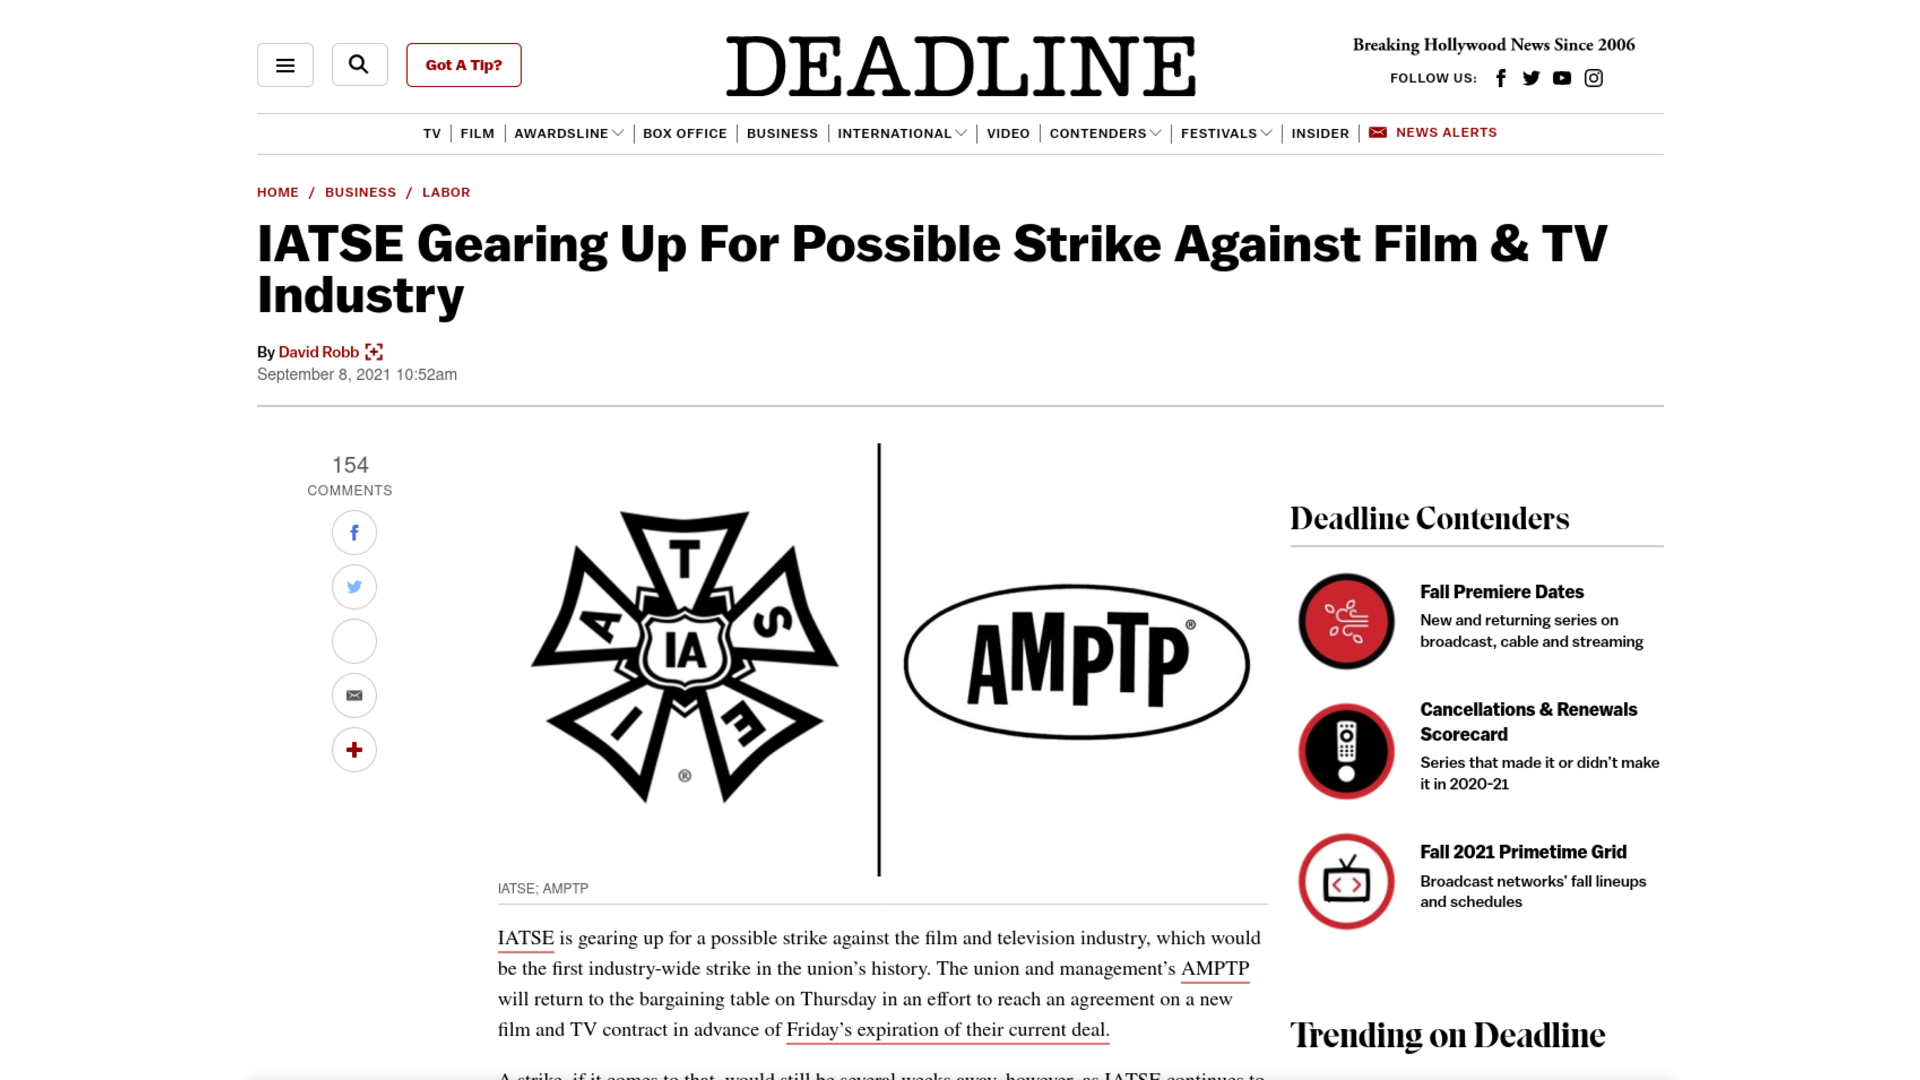 Fairness Rocks News IATSE Gearing Up For Possible Strike Against Film & TV Industry